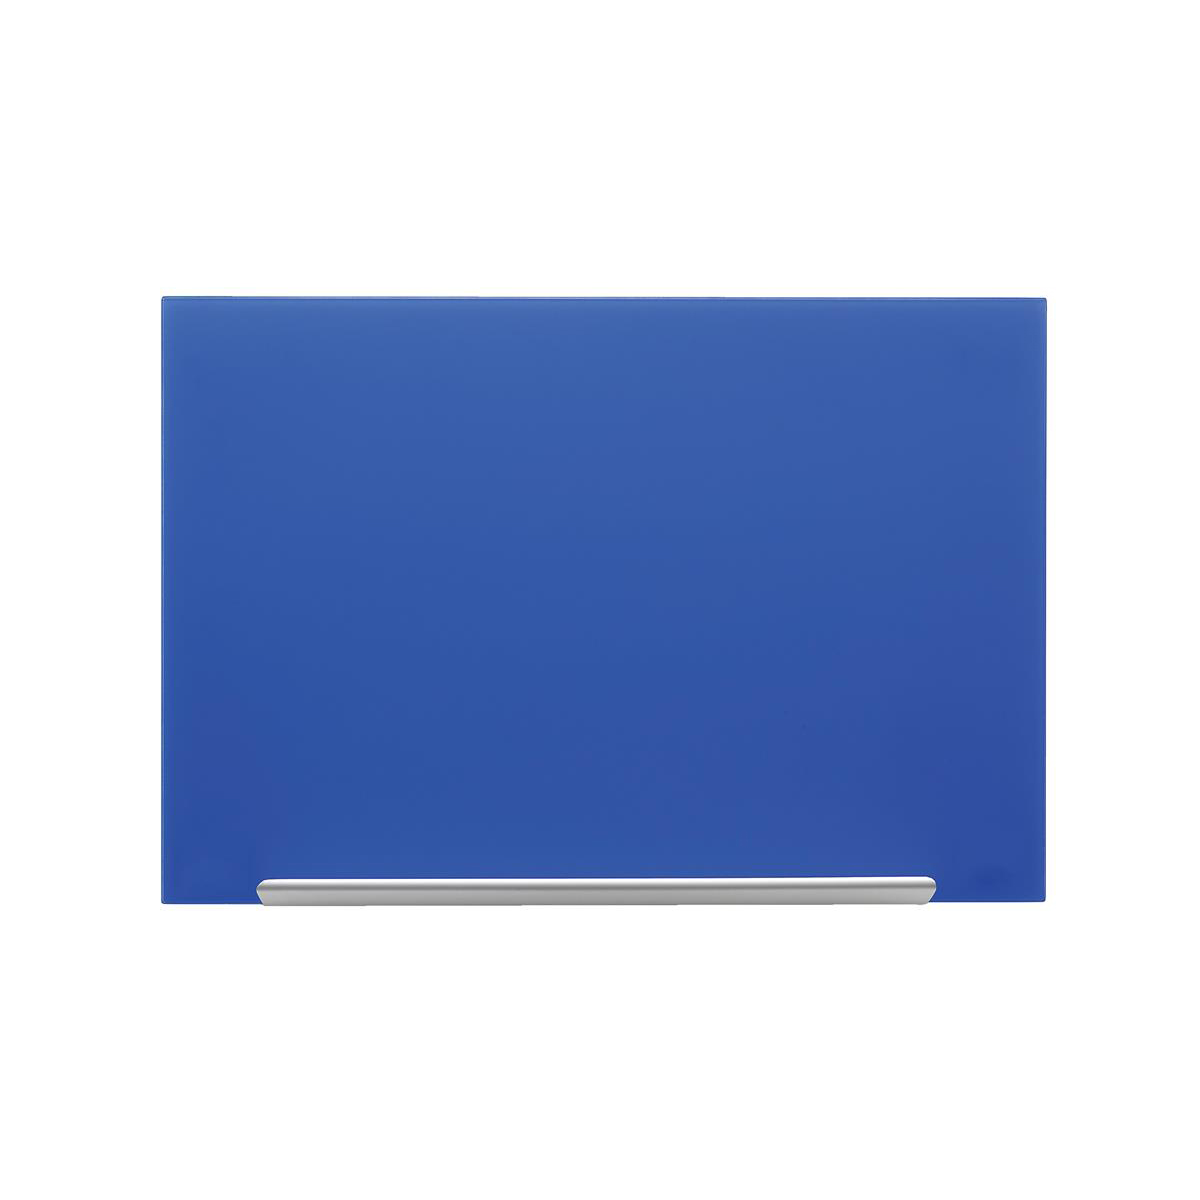 Magnetic Nobo Diamond Glass Board Magnetic Scratch Resistant Fixings Included W1000xH560mm Blue Ref 1905188